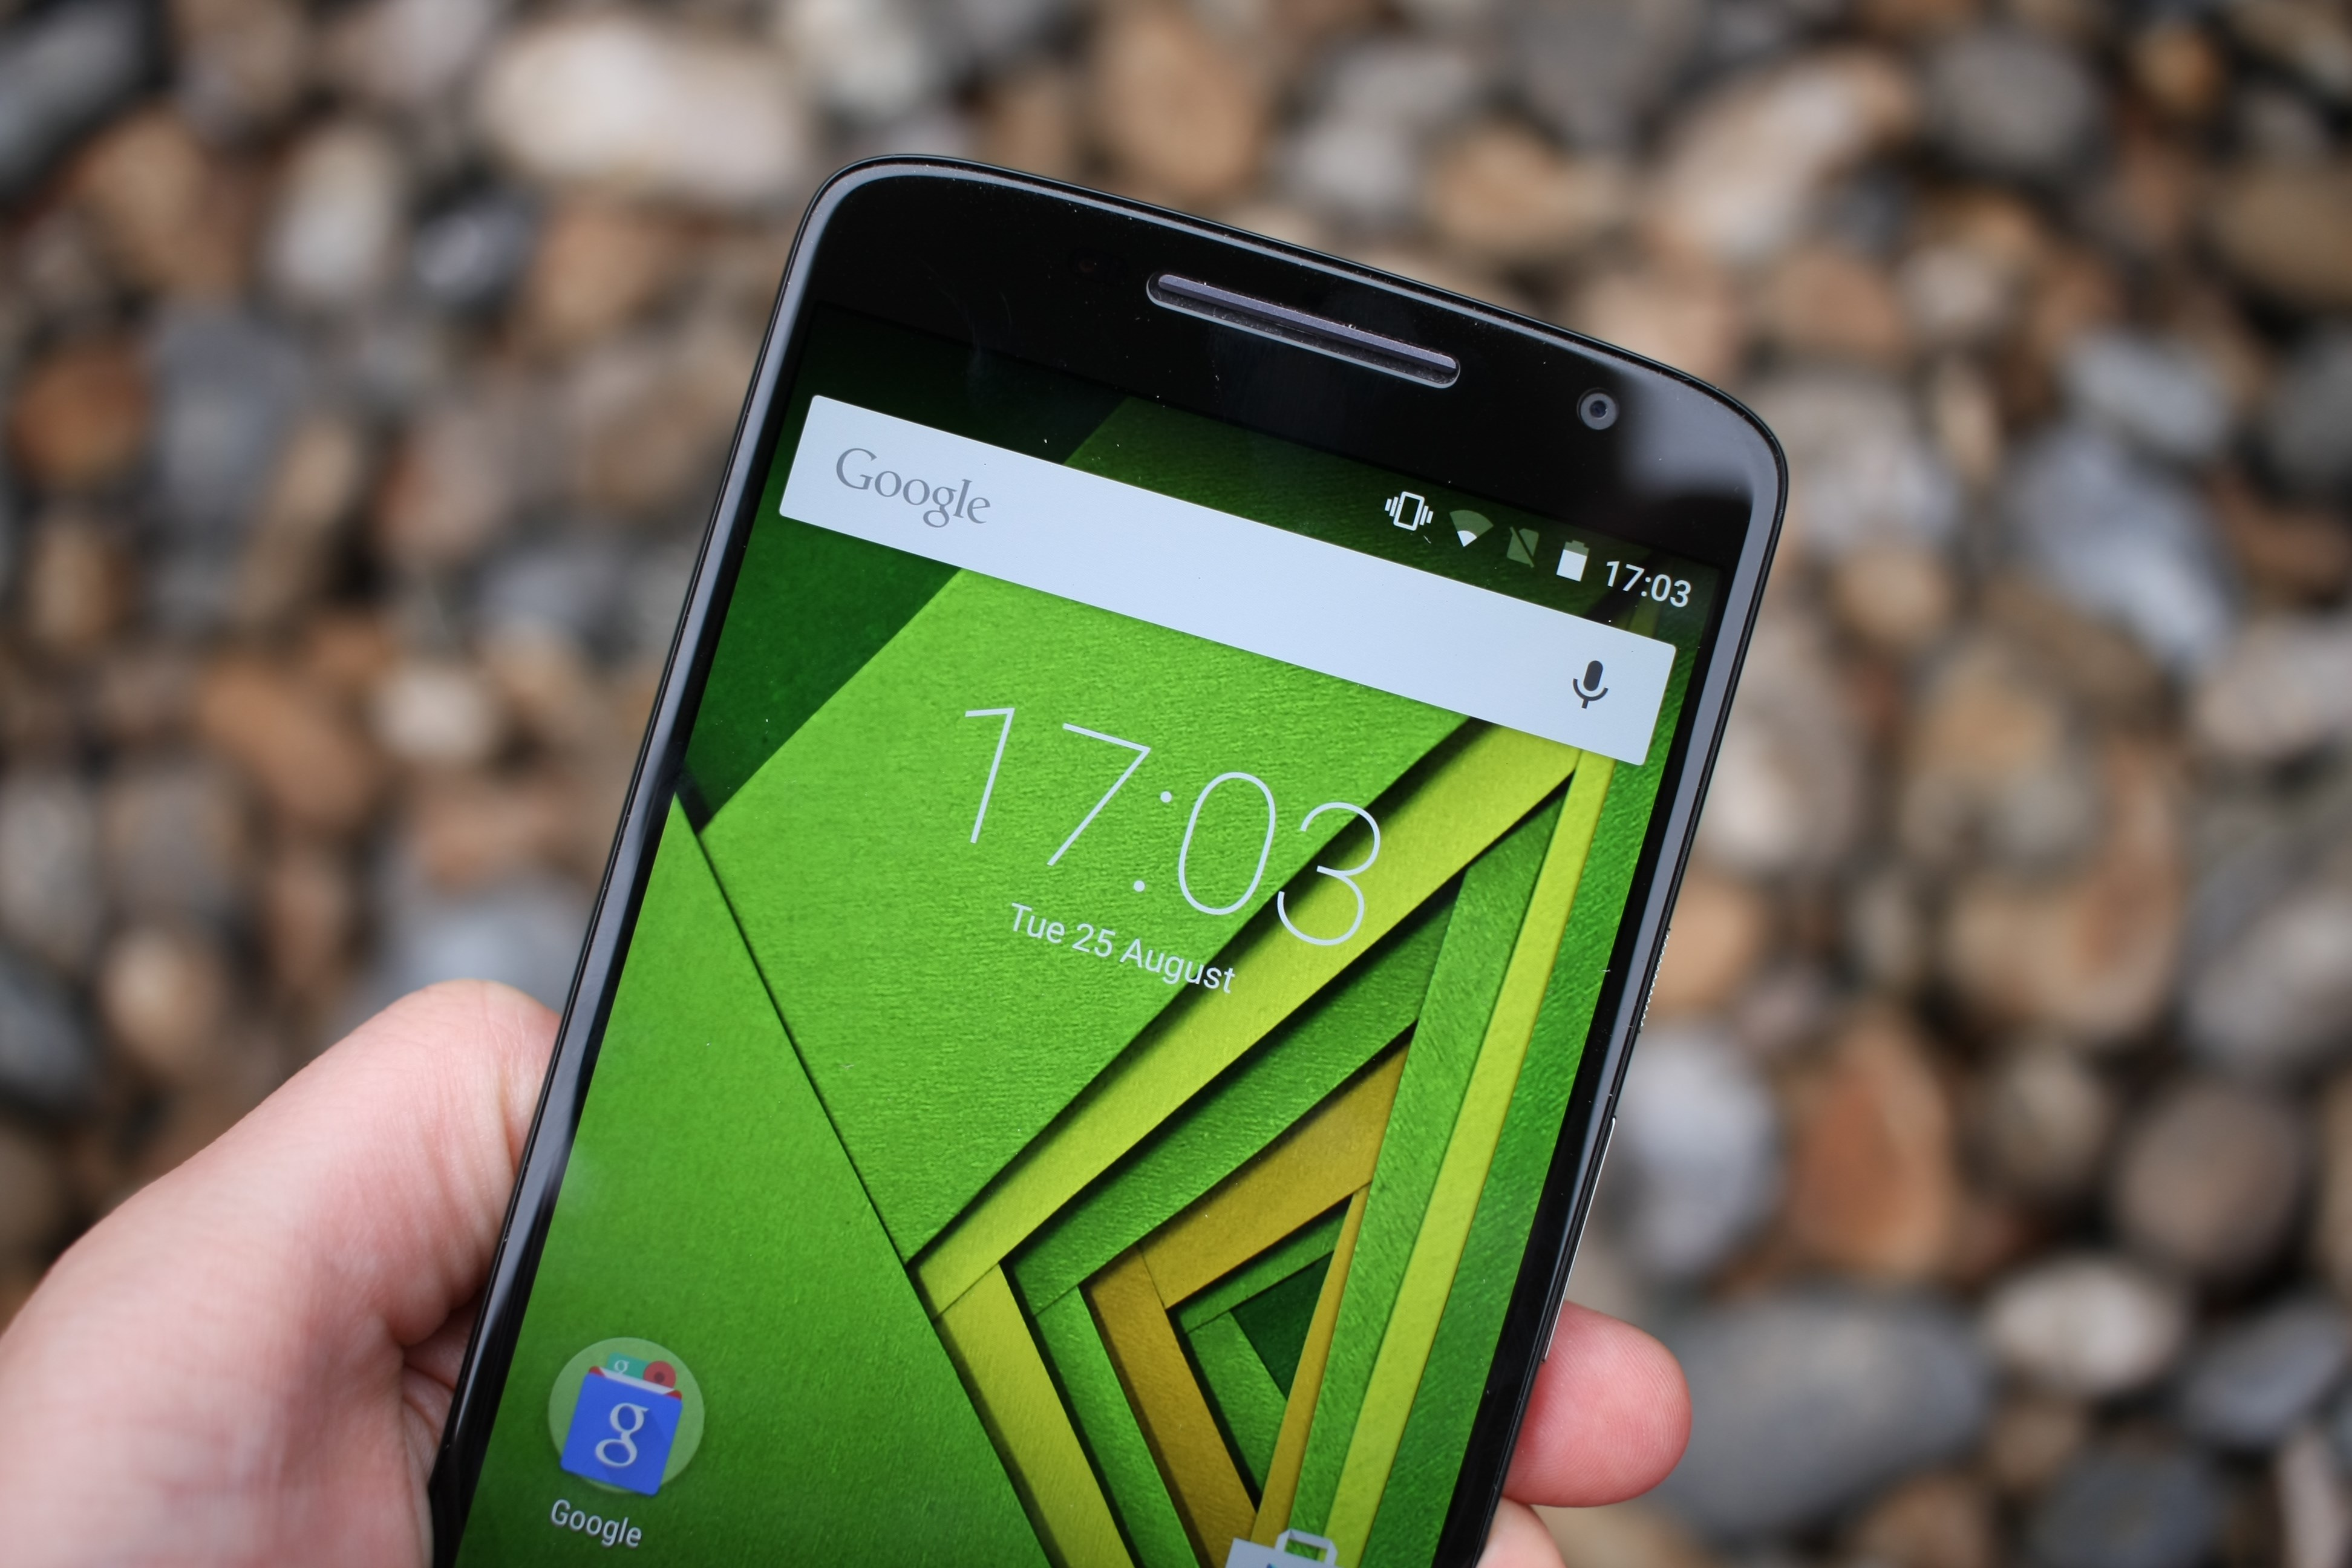 Moto z moto z play now available in india price specifications and - Moto X Play Display